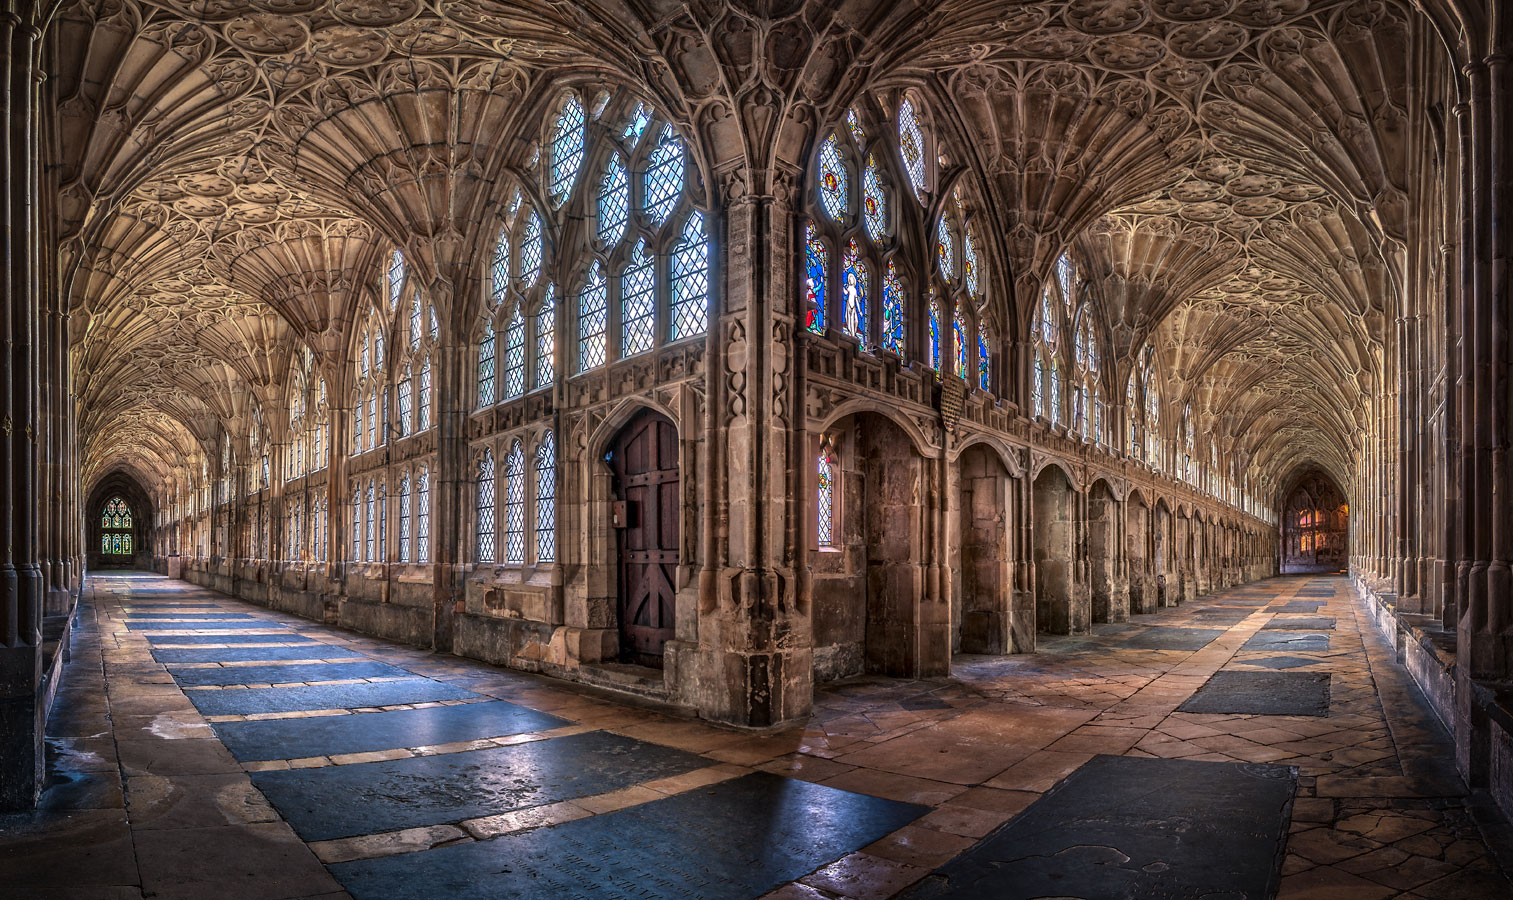 Cloisters at Gloucester Cathedral, United Kingdom, © Christopher Cherrington, 3rd Prize, Wiki Loves Monuments Photo Contest